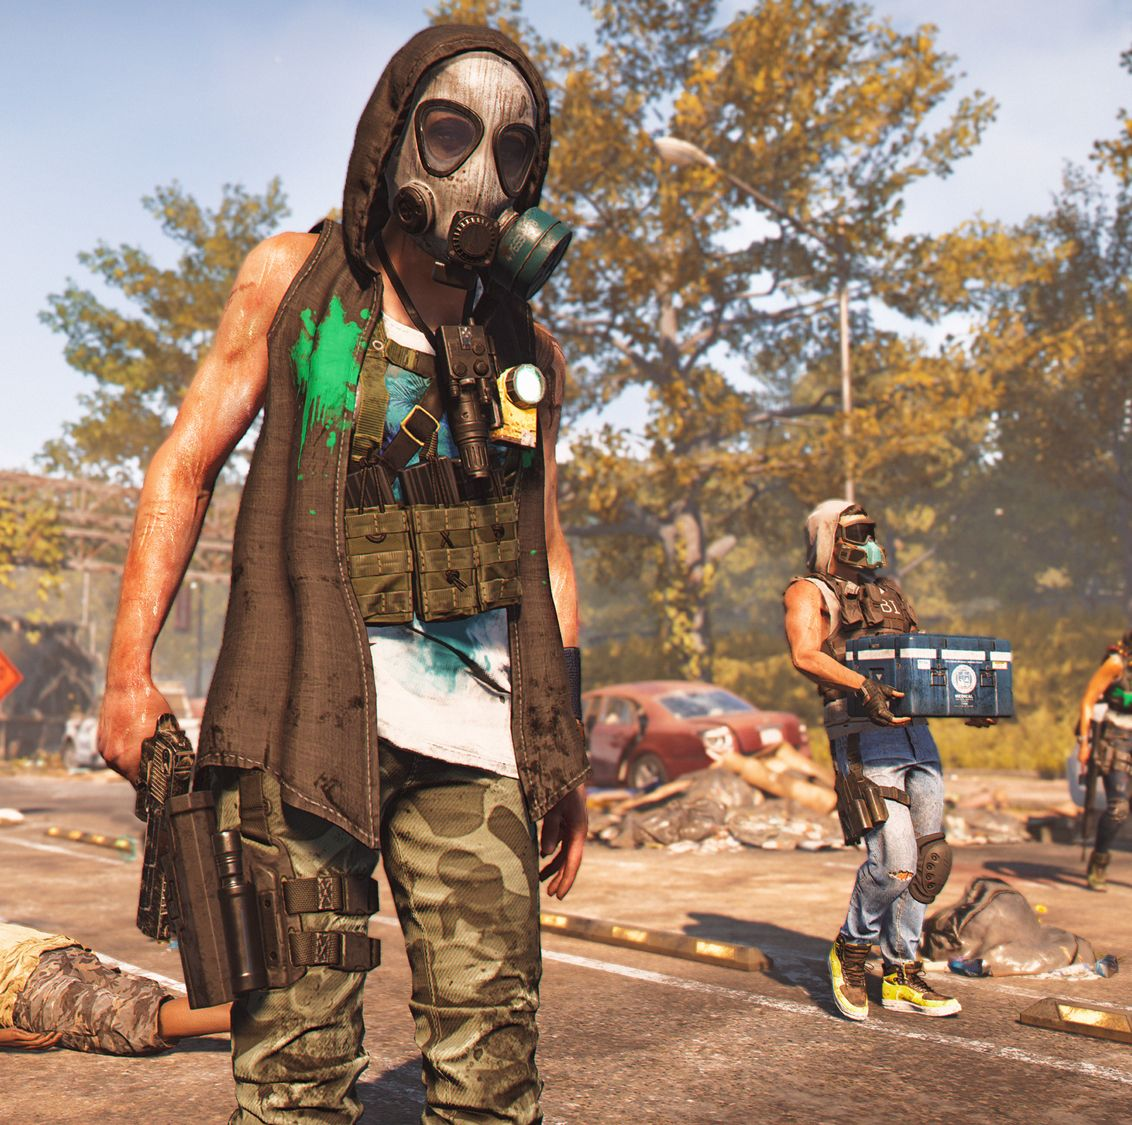 The Division 2 review - A great looter-shooter that improves on the genre